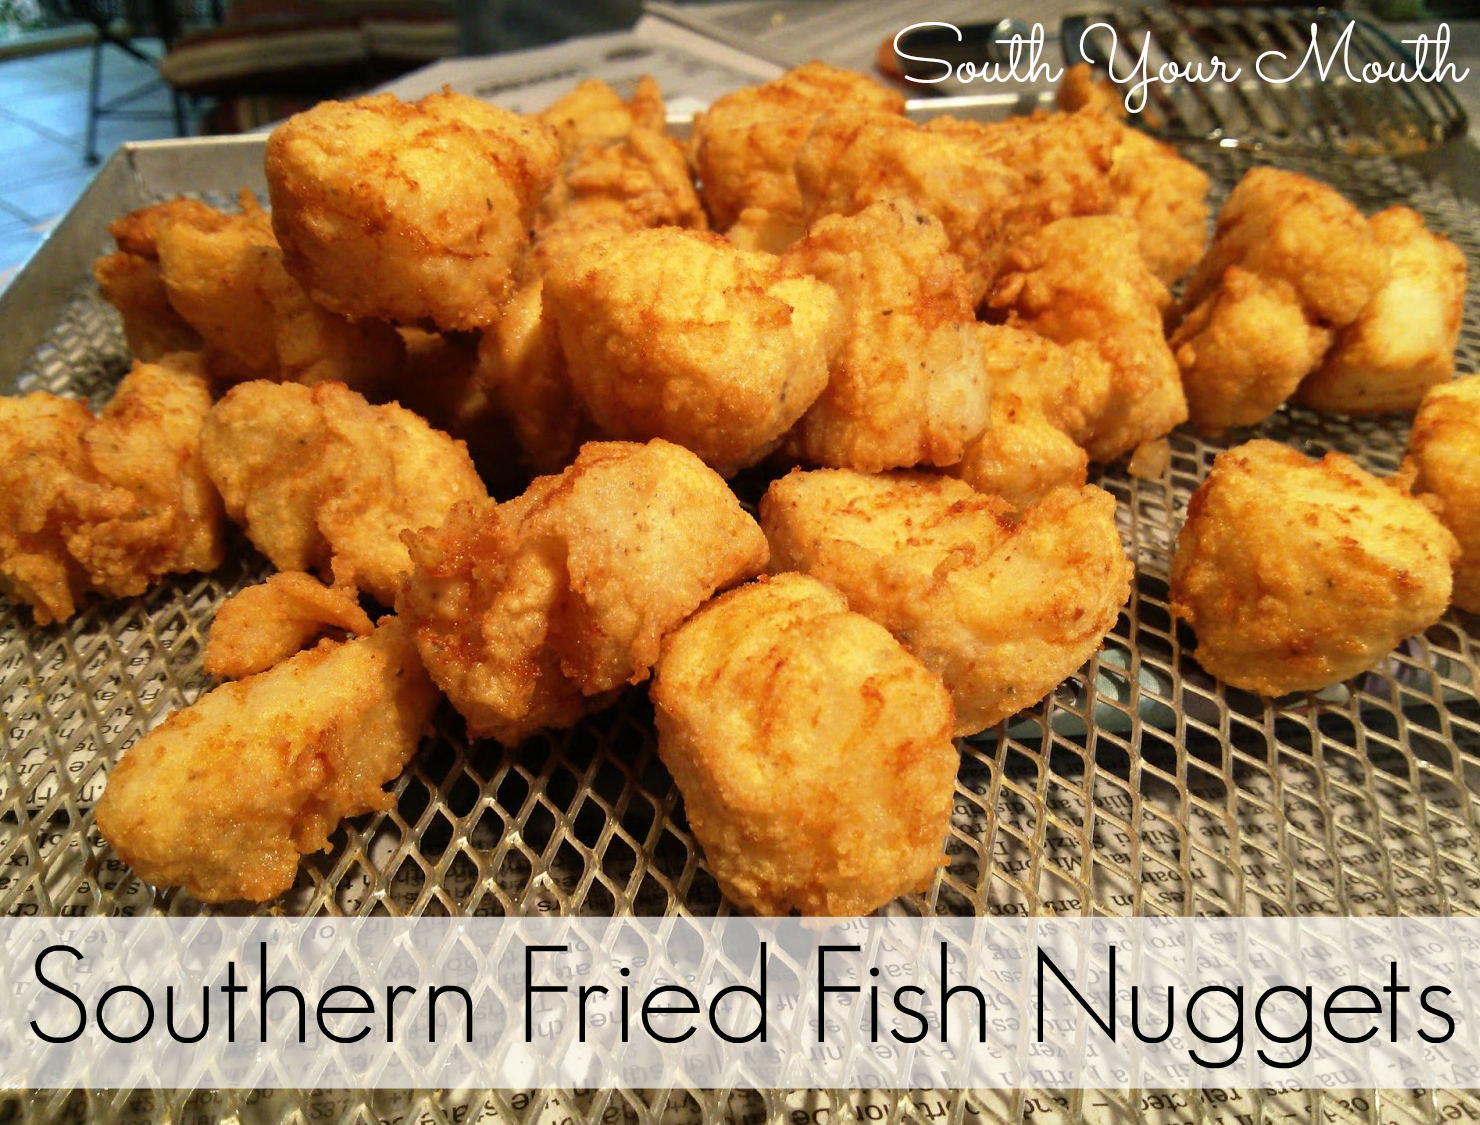 South Your Mouth: Southern Fried Fish Nuggets